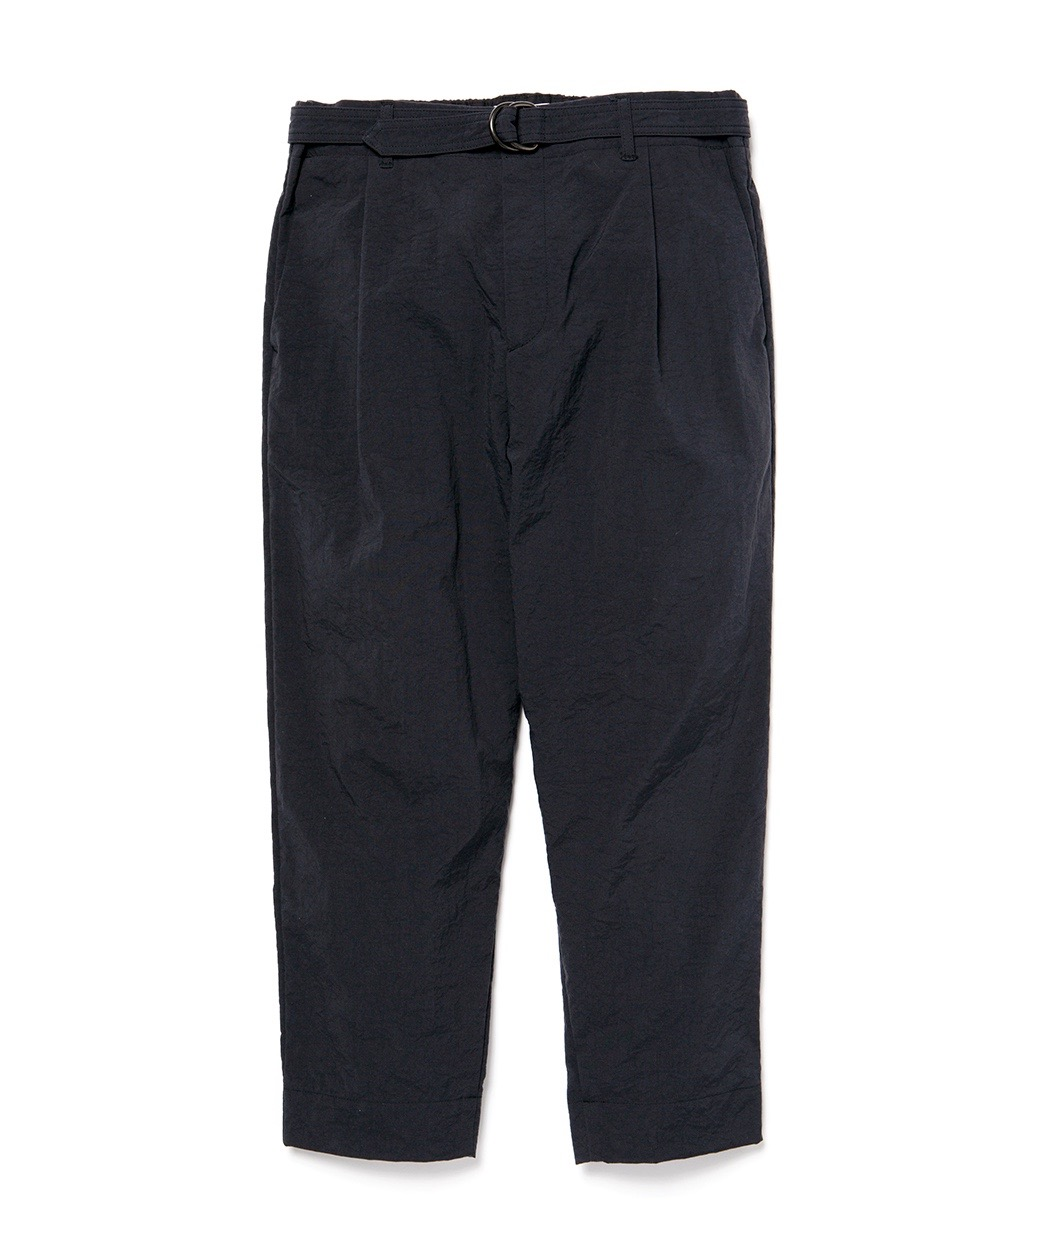 VLANK CONCEPT WEAR 2 WAY BELTED PANTS